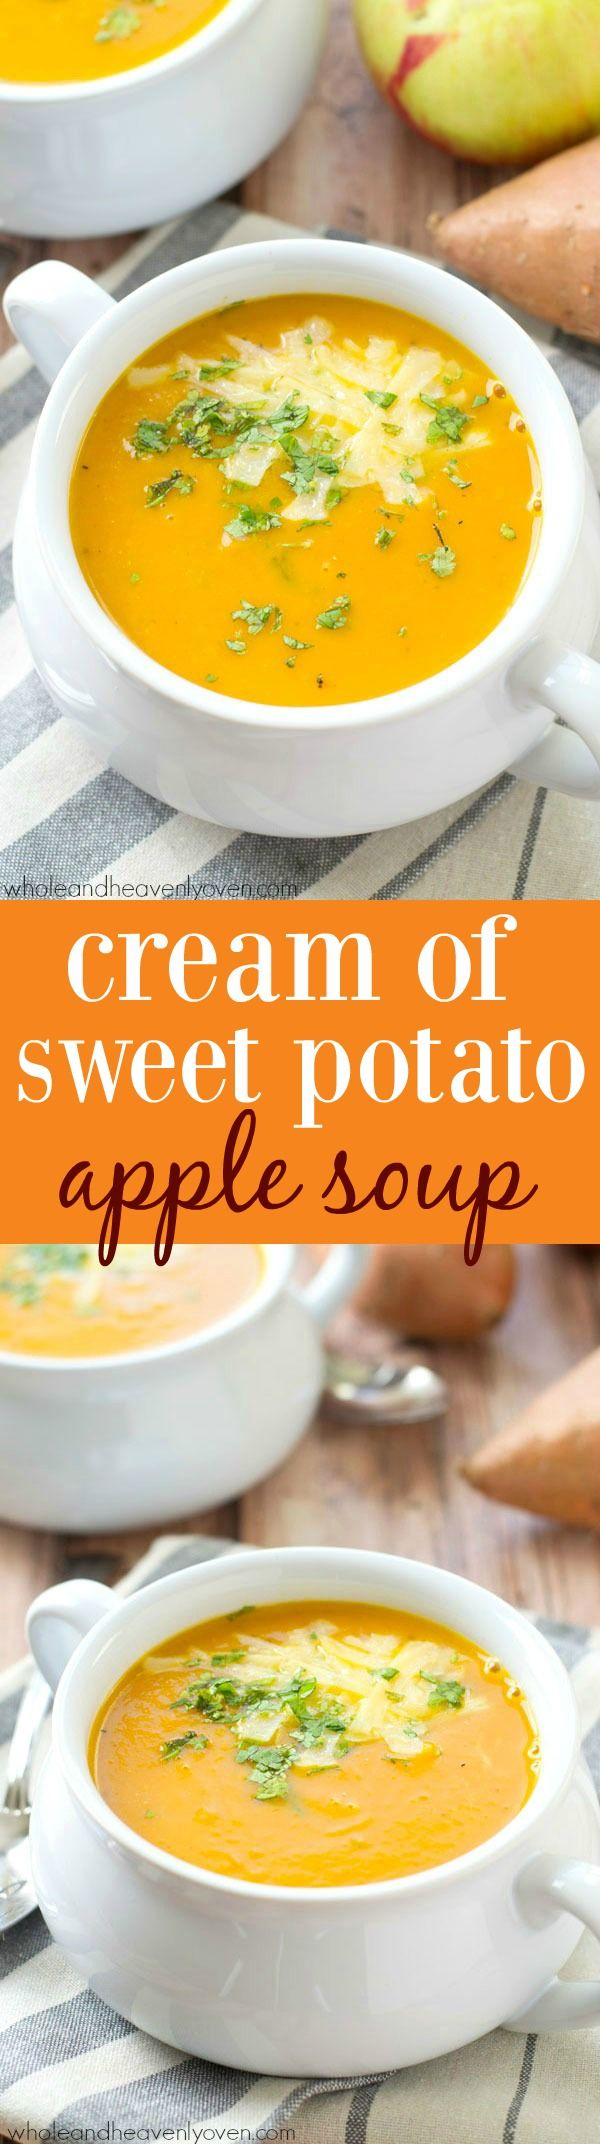 Velvety-smooth and loaded with sweet potato and apple flavors, this fall-flavored cream soup is the ultimate warm-up on a chilly day! @WholeHeavenly